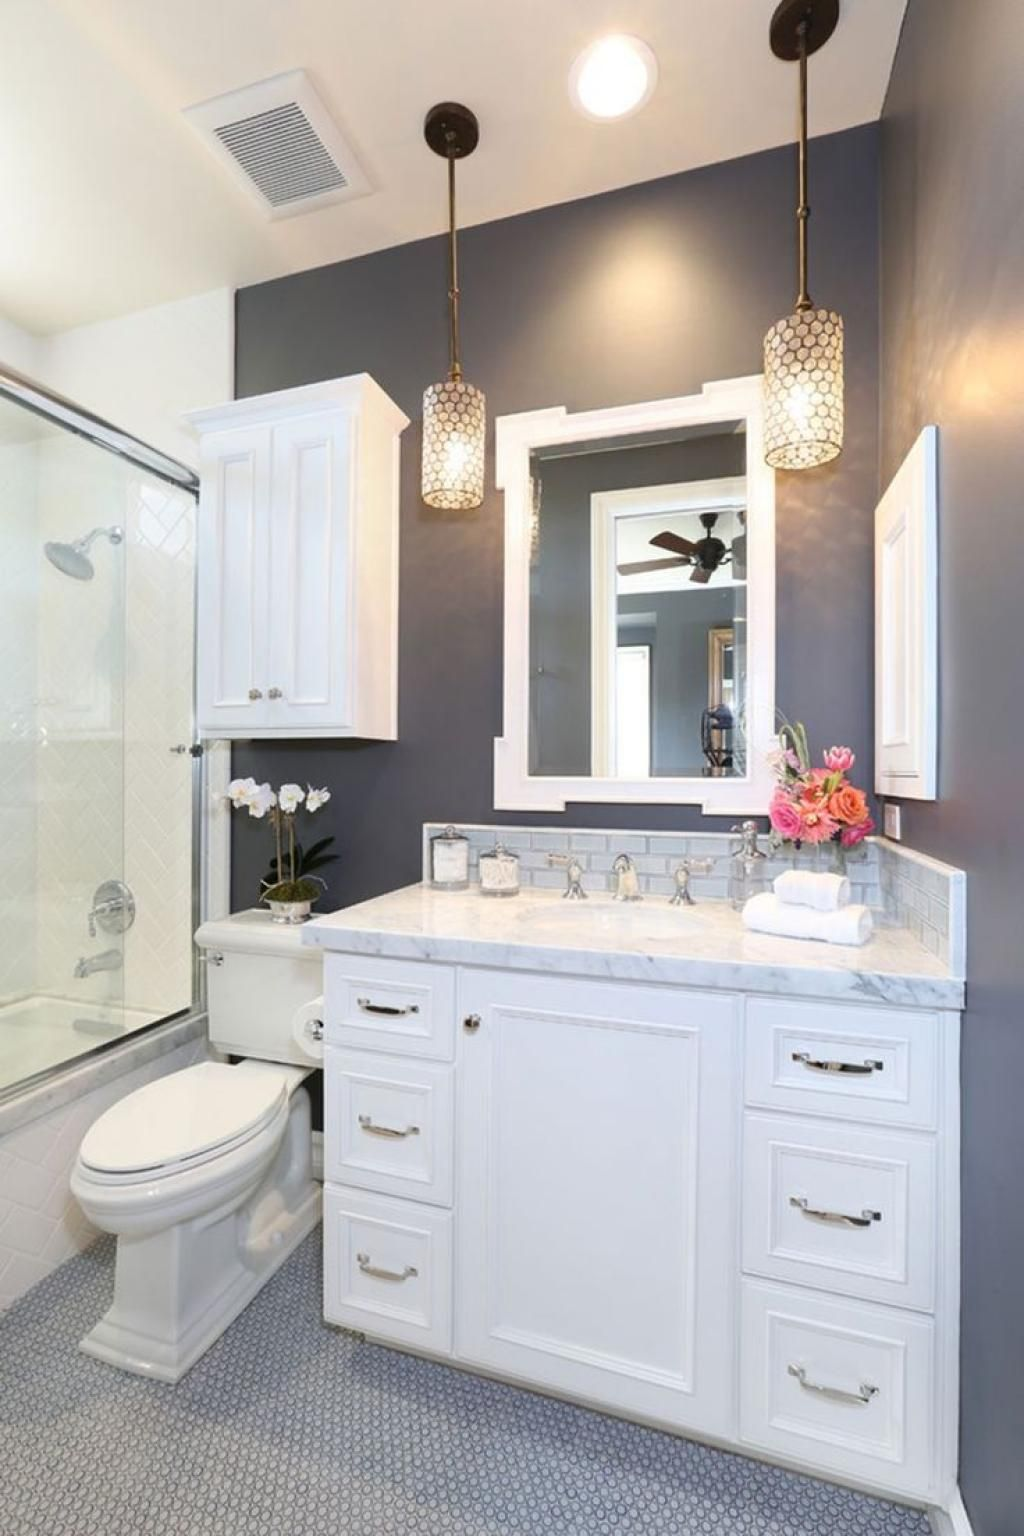 3 Easy Steps To Remodelling Your Small Bathroom With Images